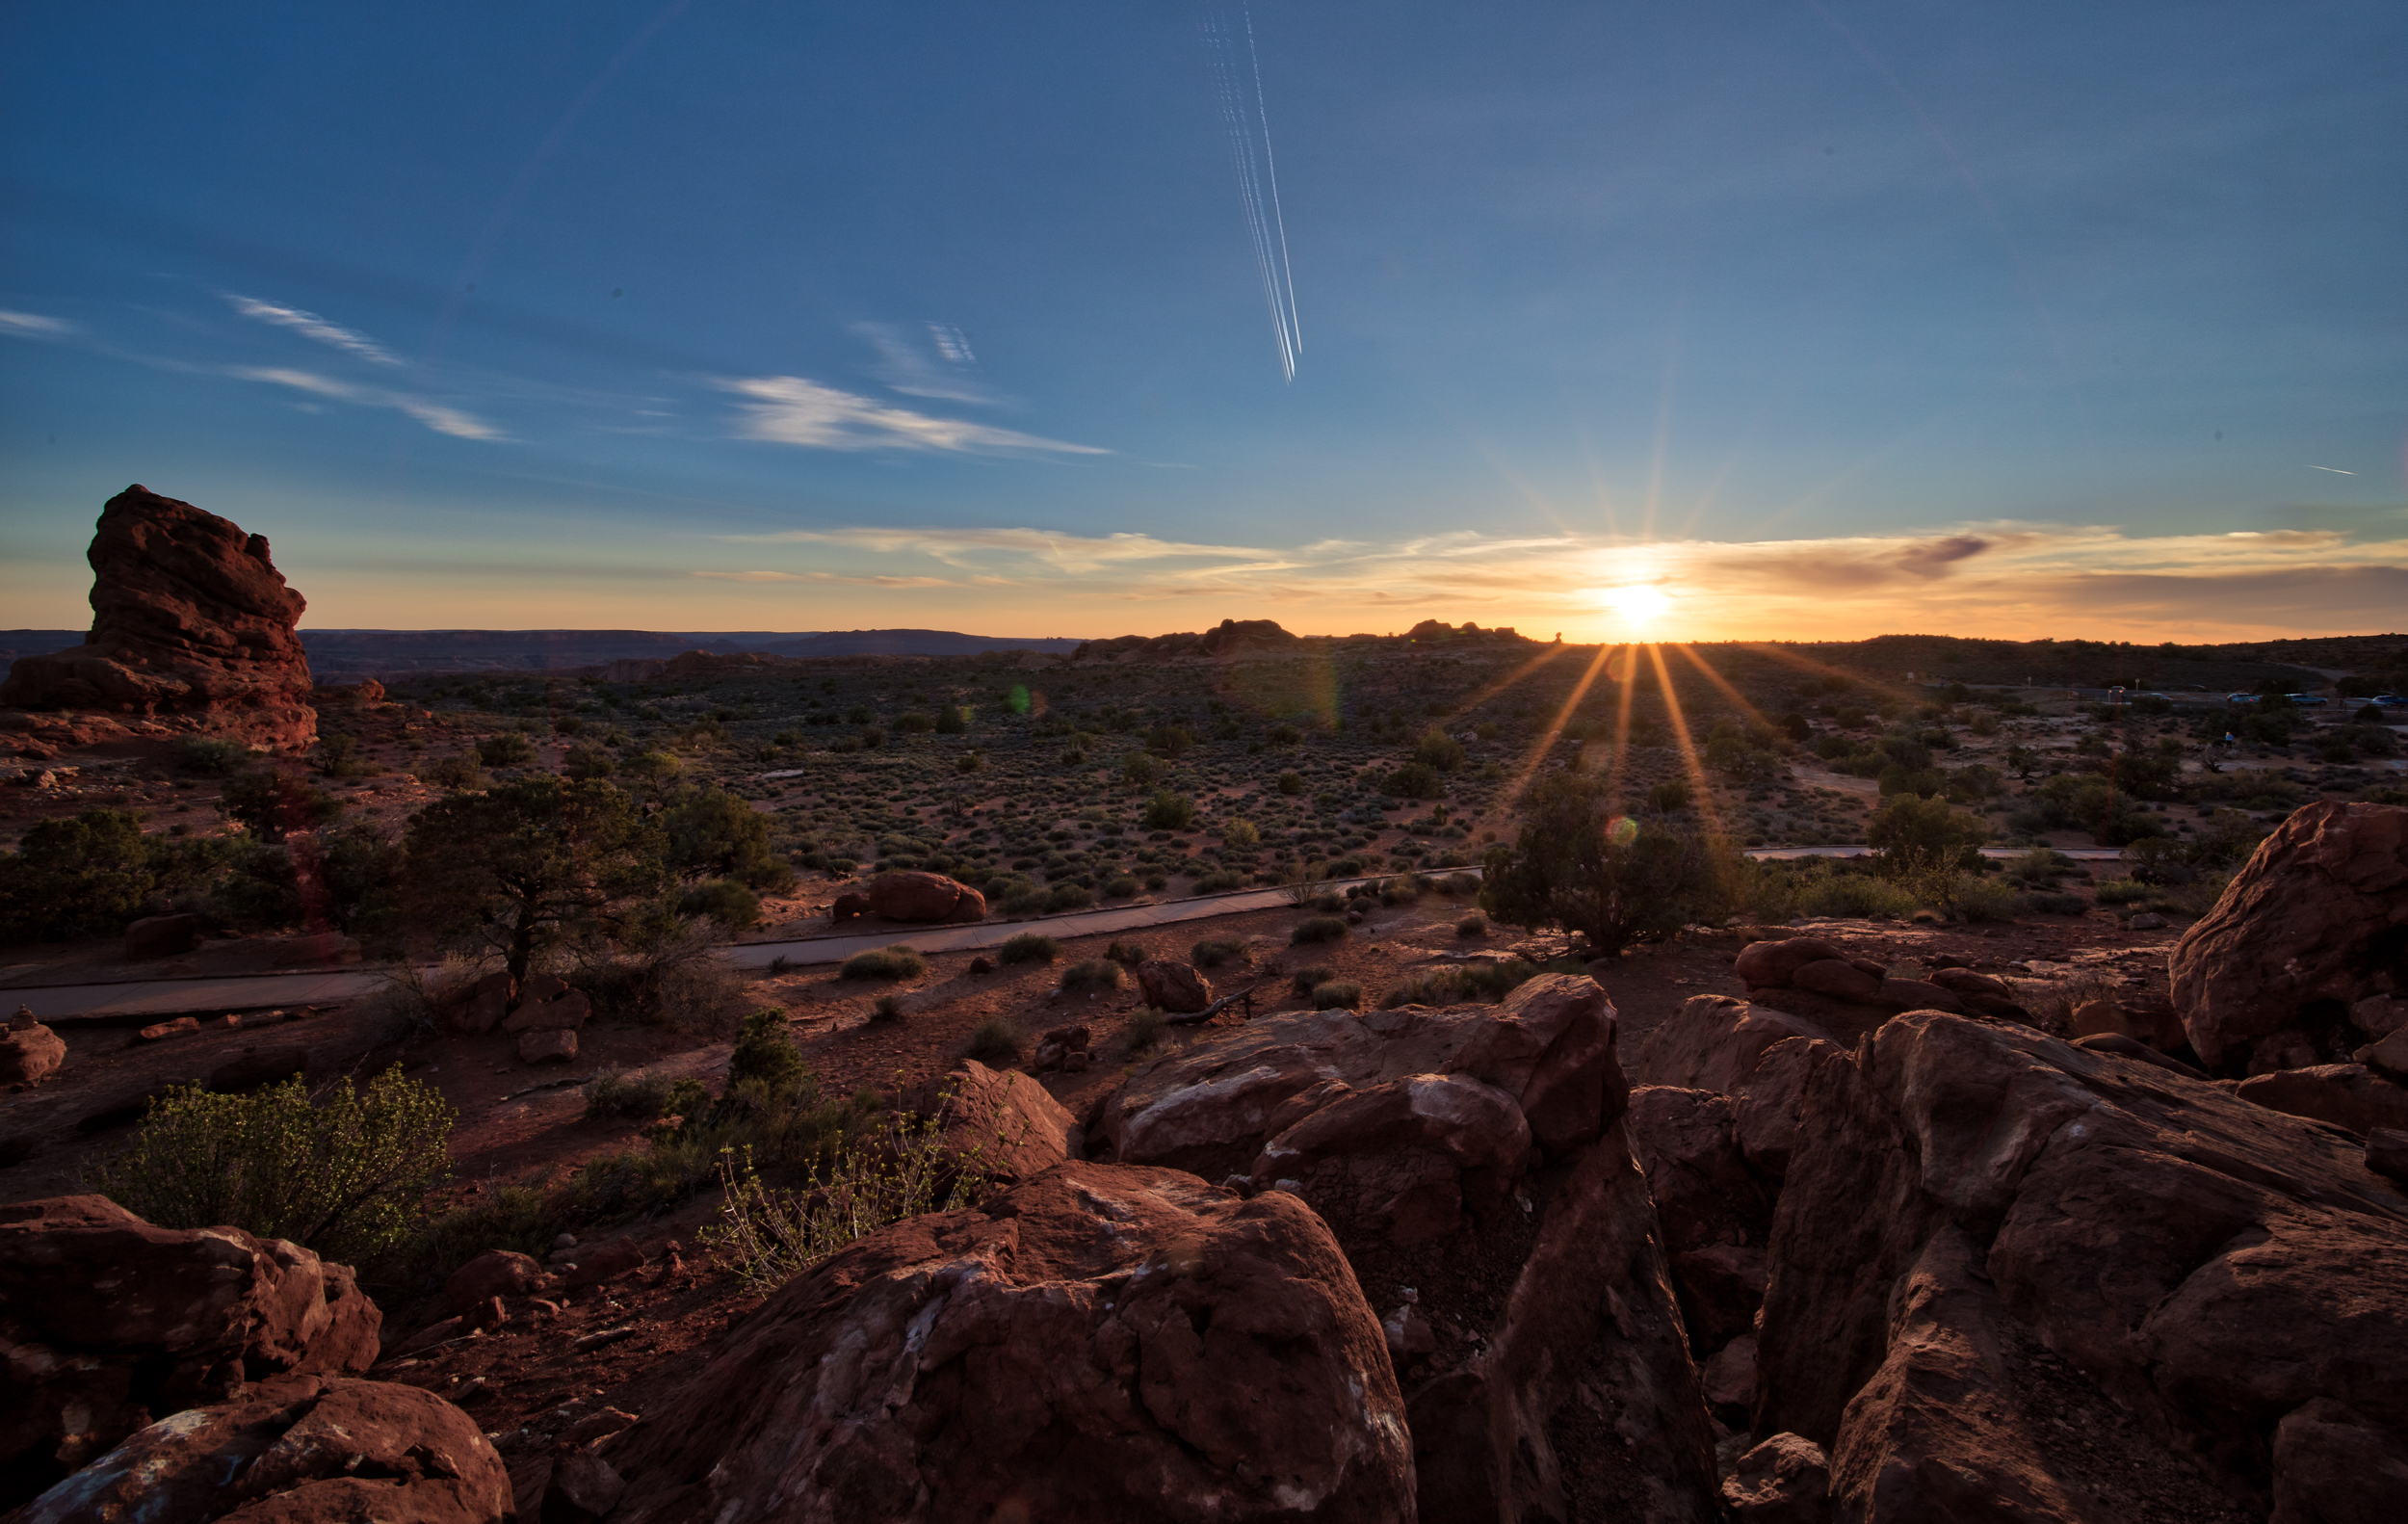 Sunset at Arches National Park. Standing under Balanced Rock